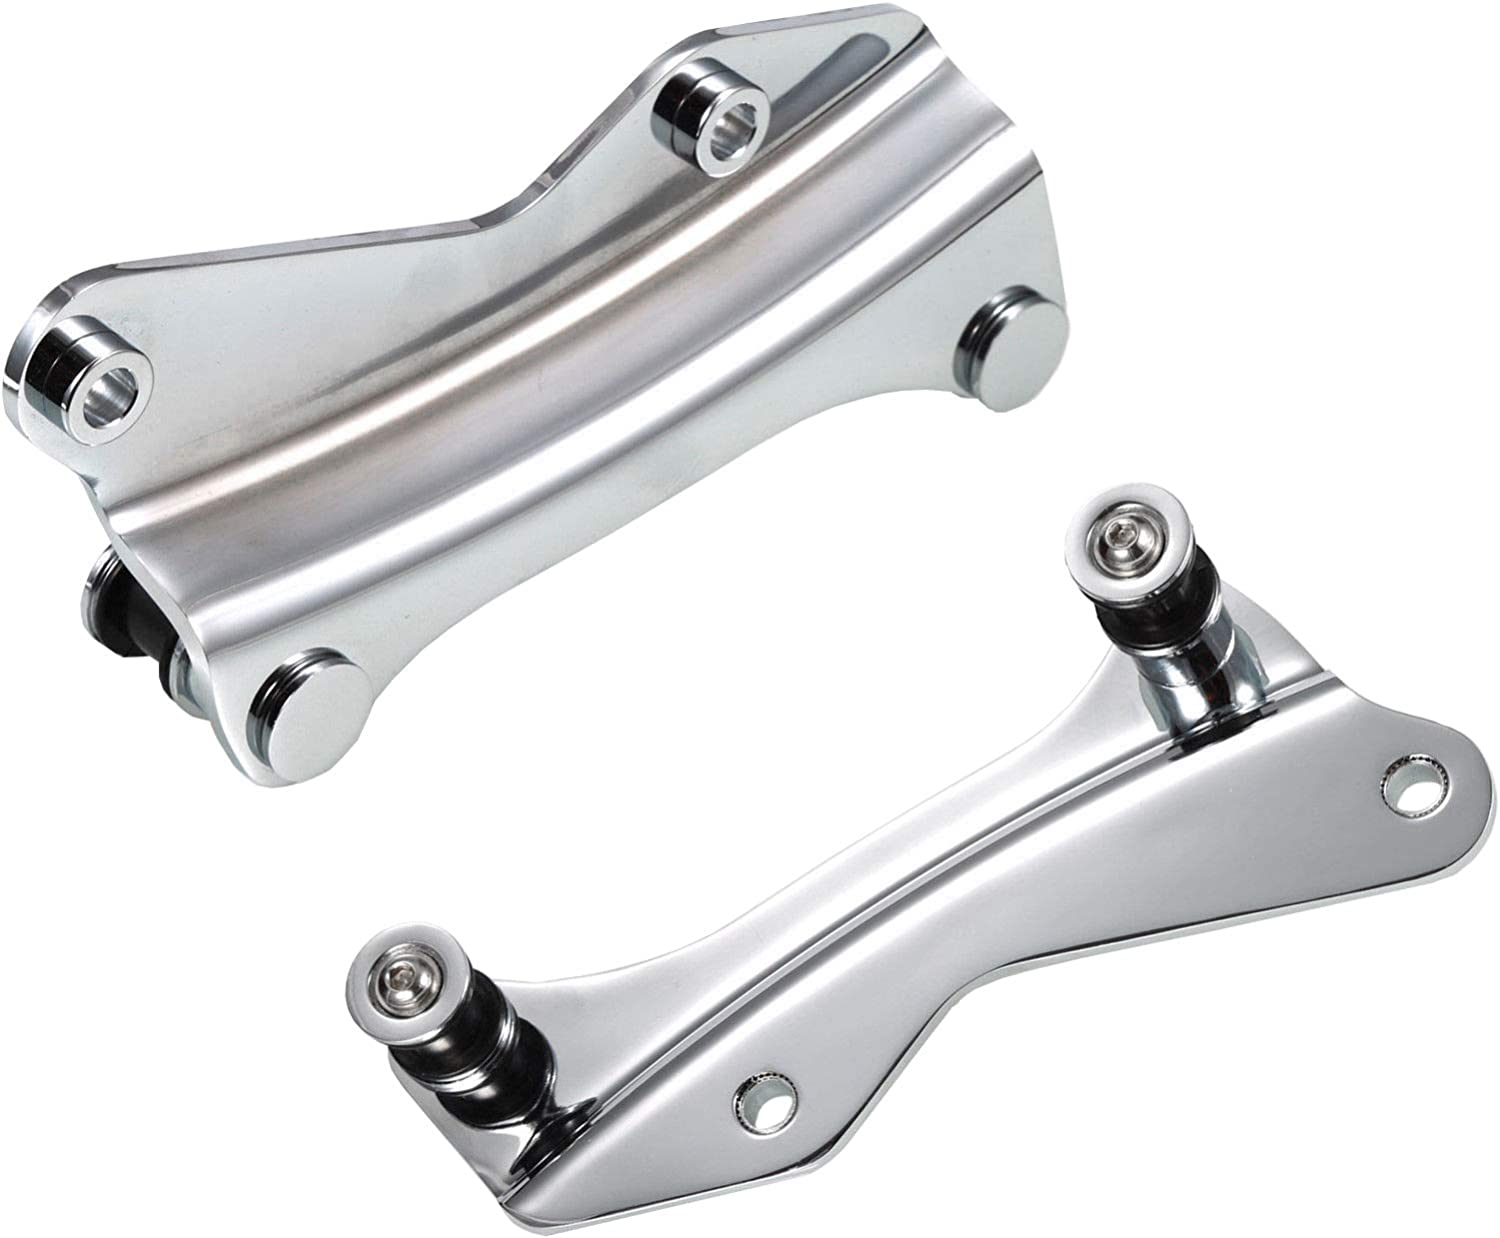 Chrome 4 Point Docking Bracket Mount Hardware For 2014-2020 Harley Davidson Touring Street Glide Road King Electra Glide